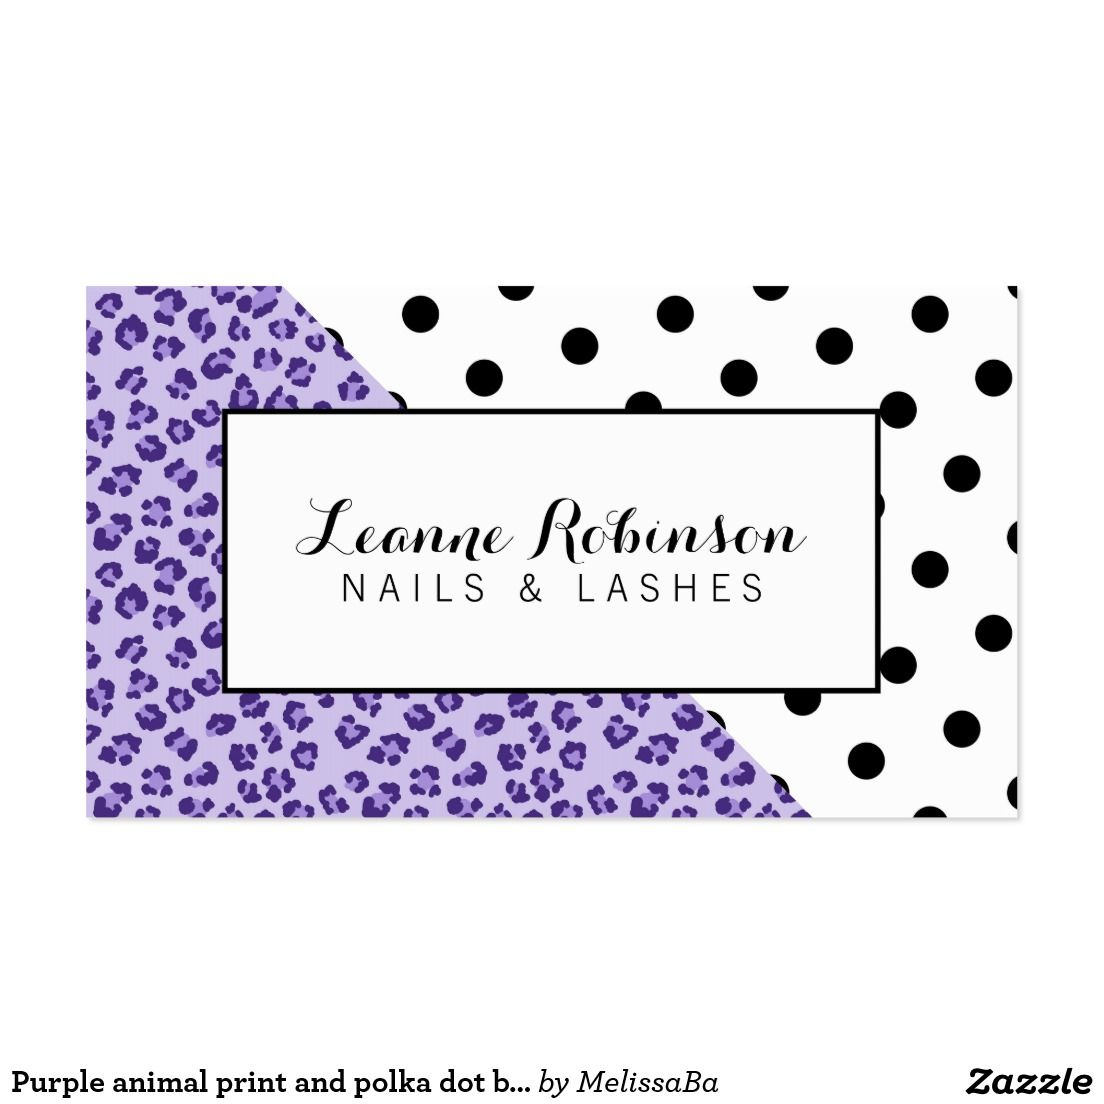 Purple animal print and polka dot business card | Business cards and ...